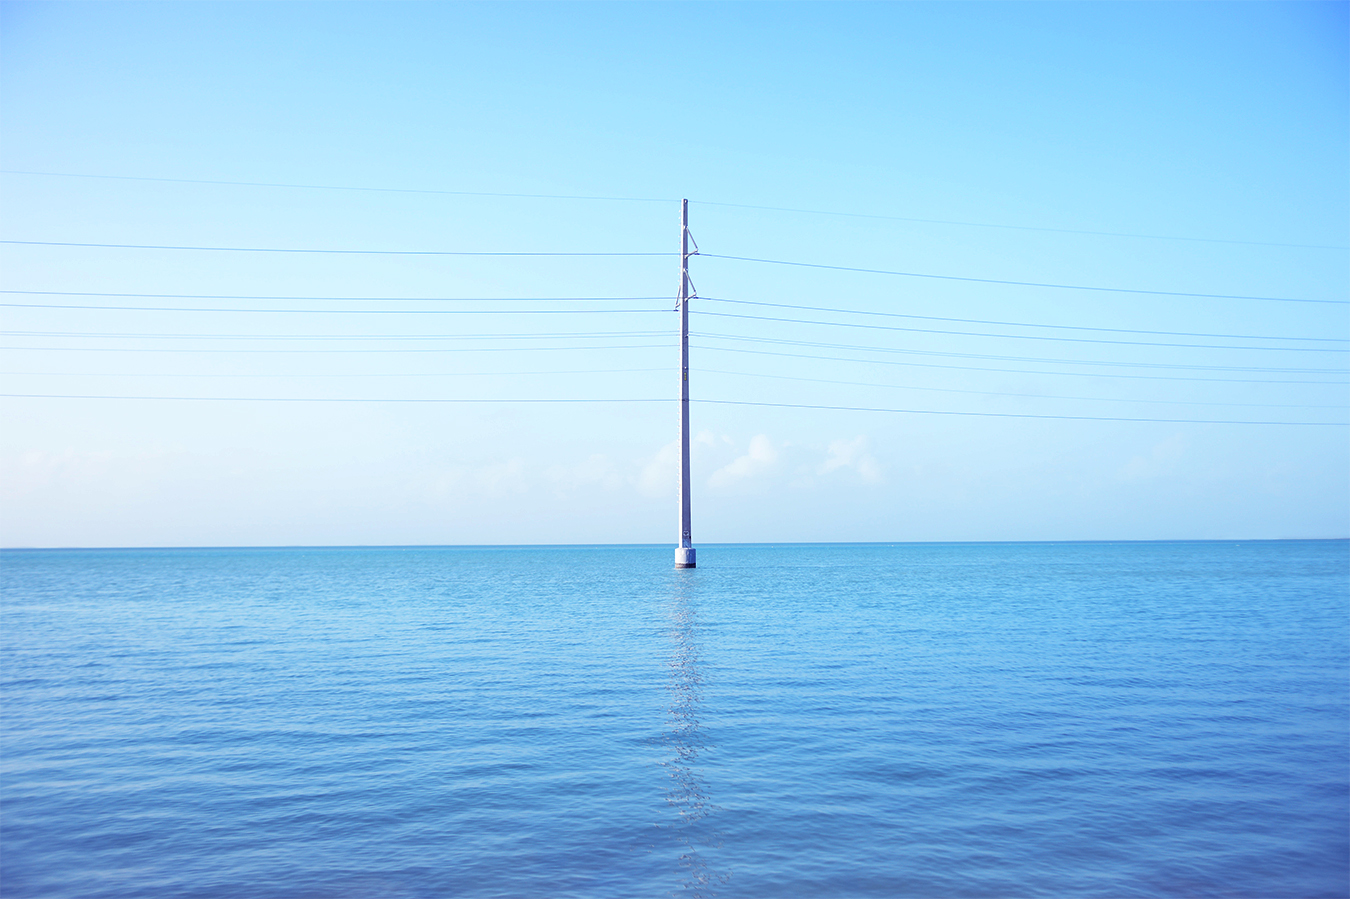 The wire pole in the sea. Photographed in Key West, the southernmost place of United States.